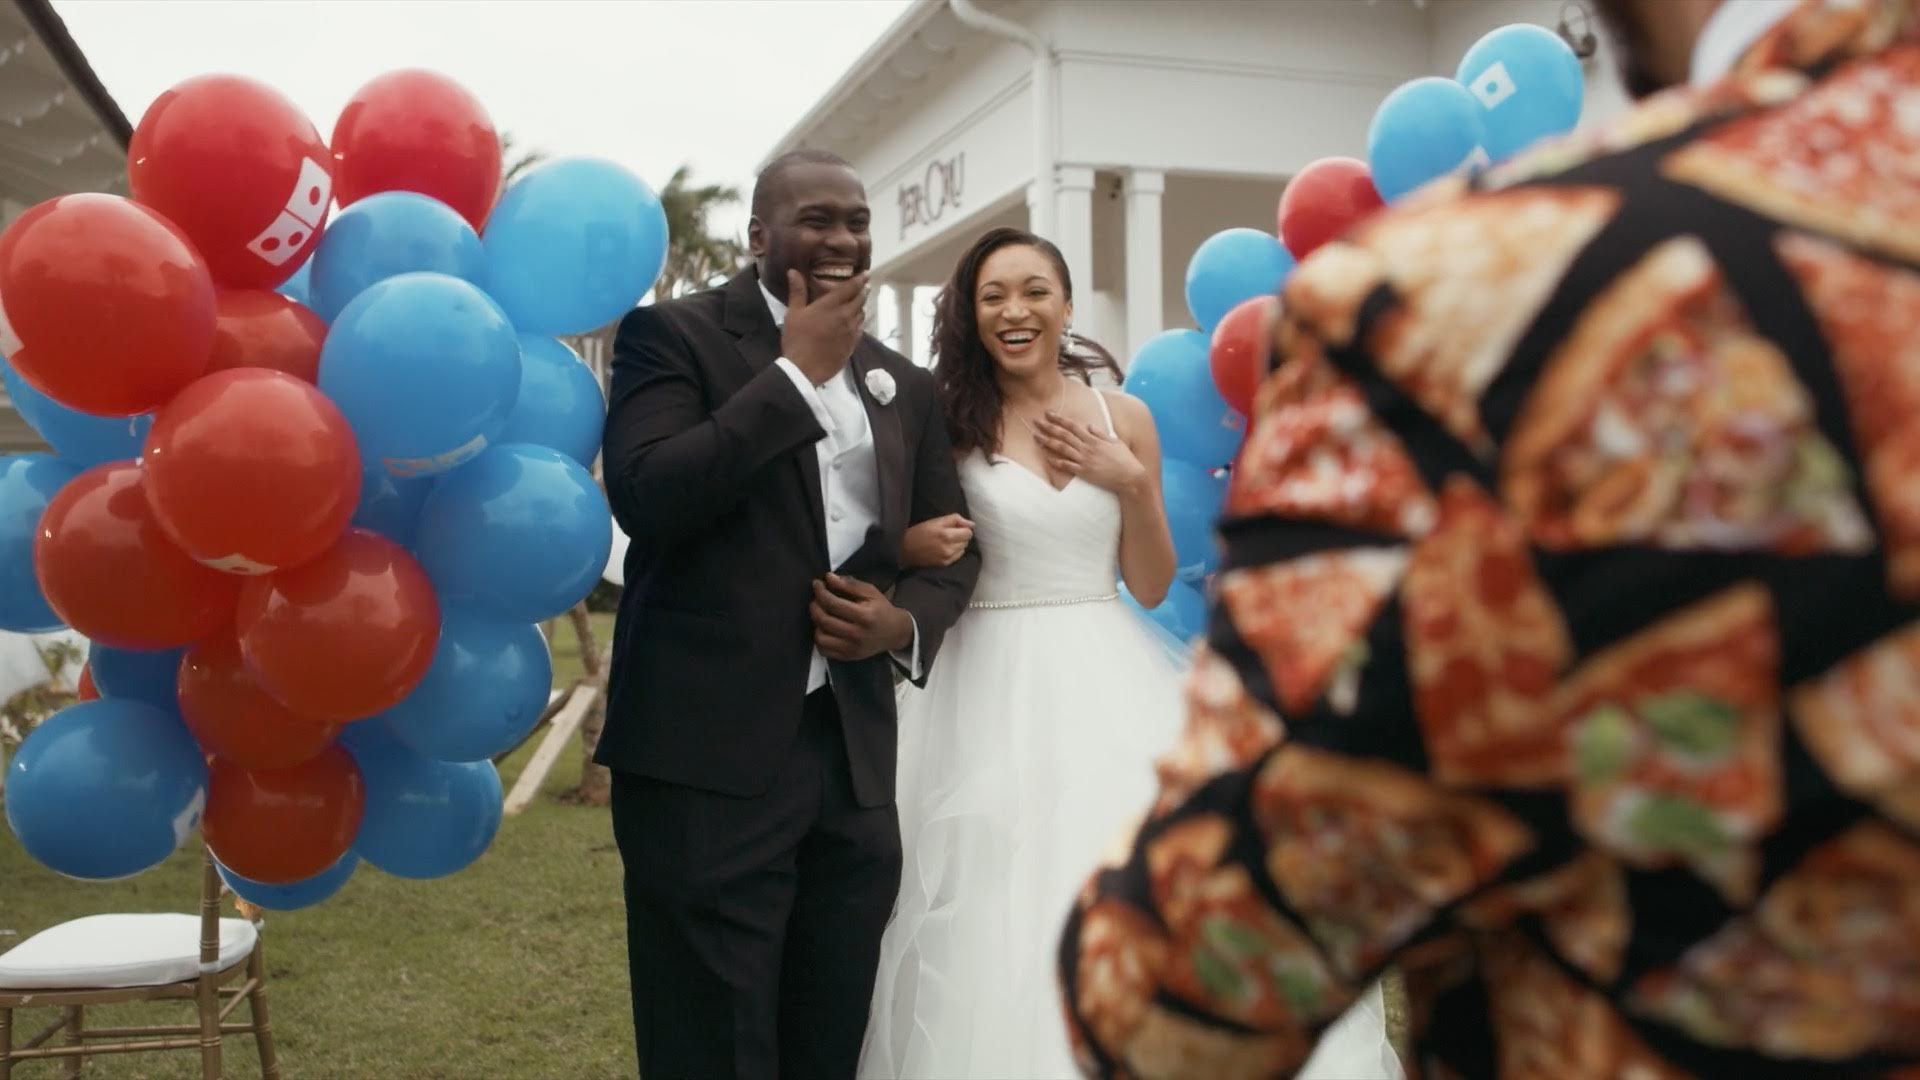 Domino's 'Cheesy Wedding' commercial takes top prize at Telly Awards